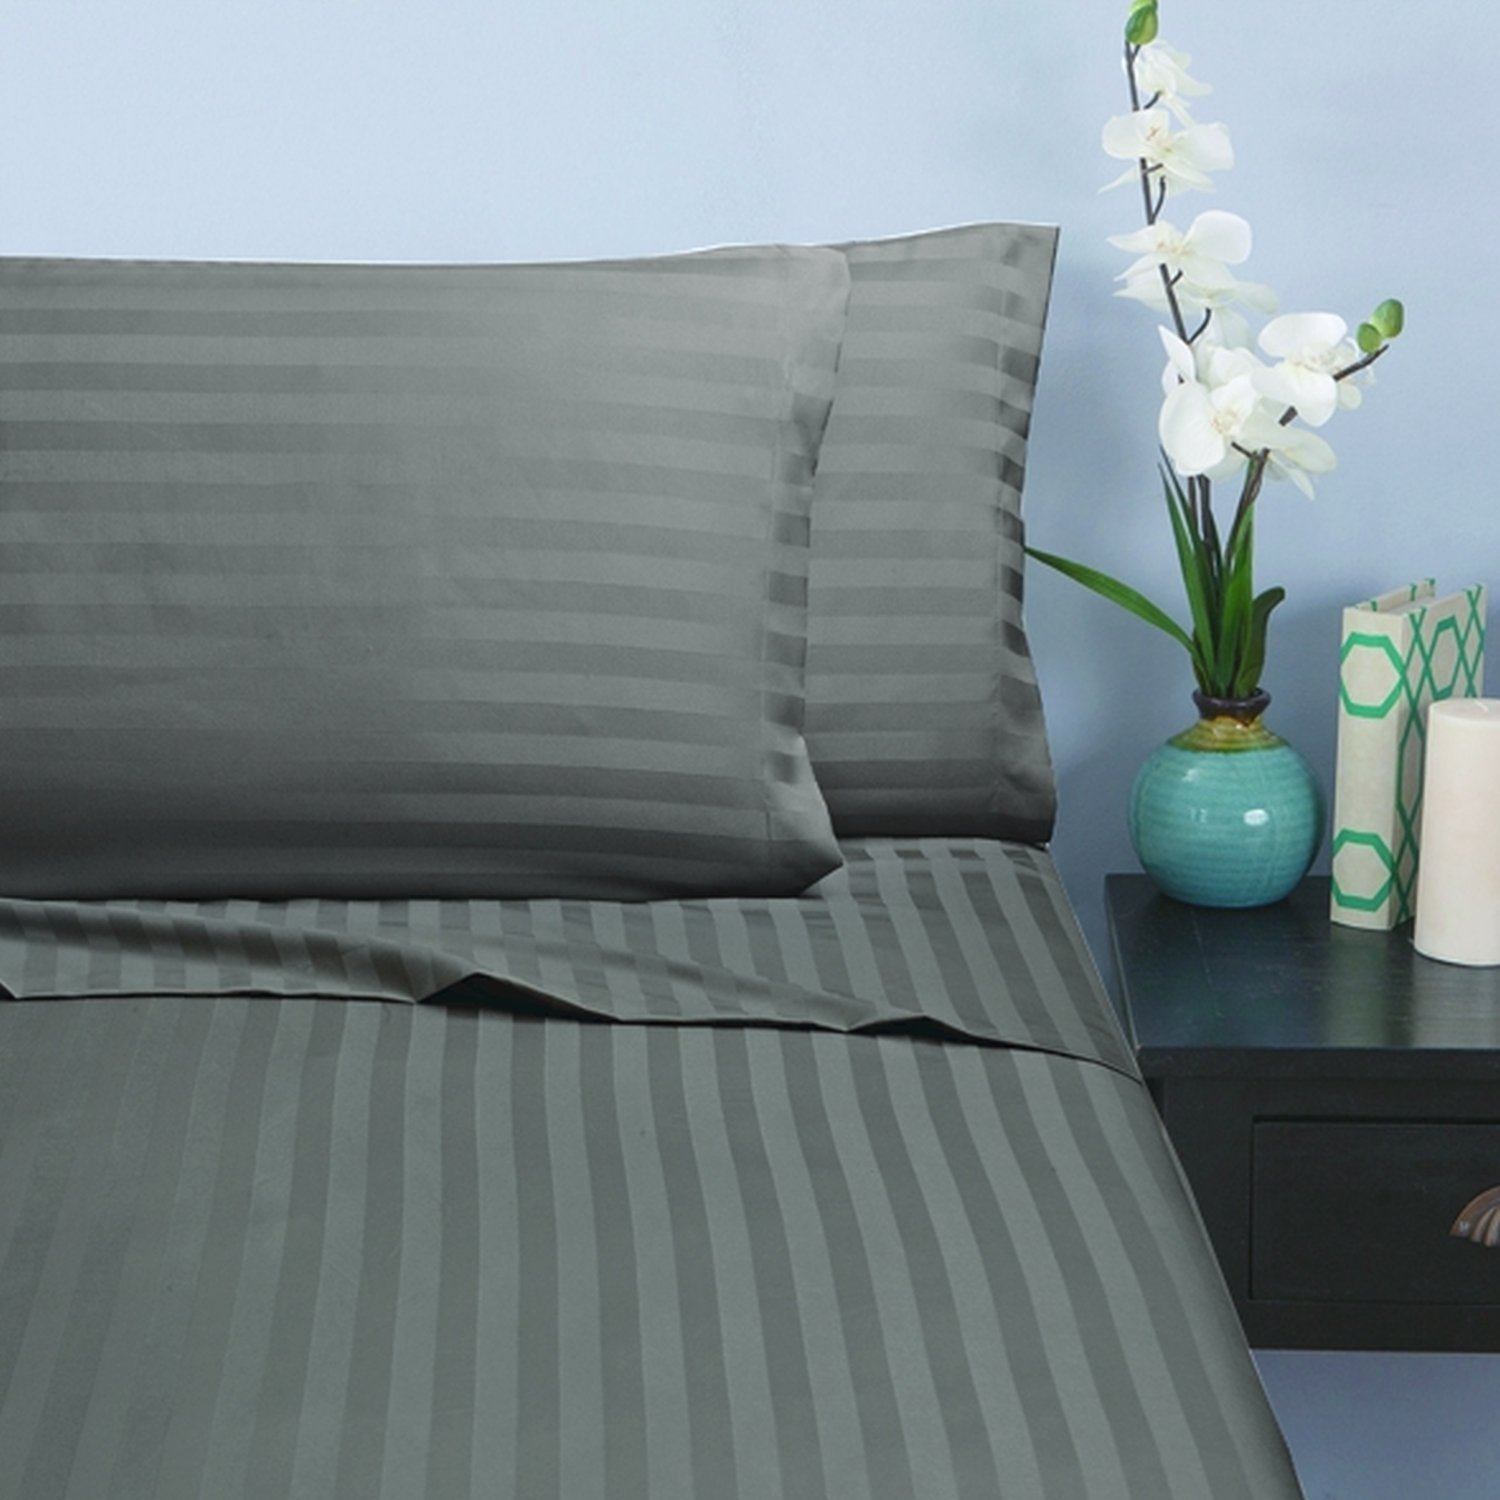 Full//Queen Green Elegant Comfort Wrinkle /& Fade Resistant 1500 Thread Count Egyptian Quality Damask STRIPES Luxurious Silky Soft 3pc Duvet Cover Set